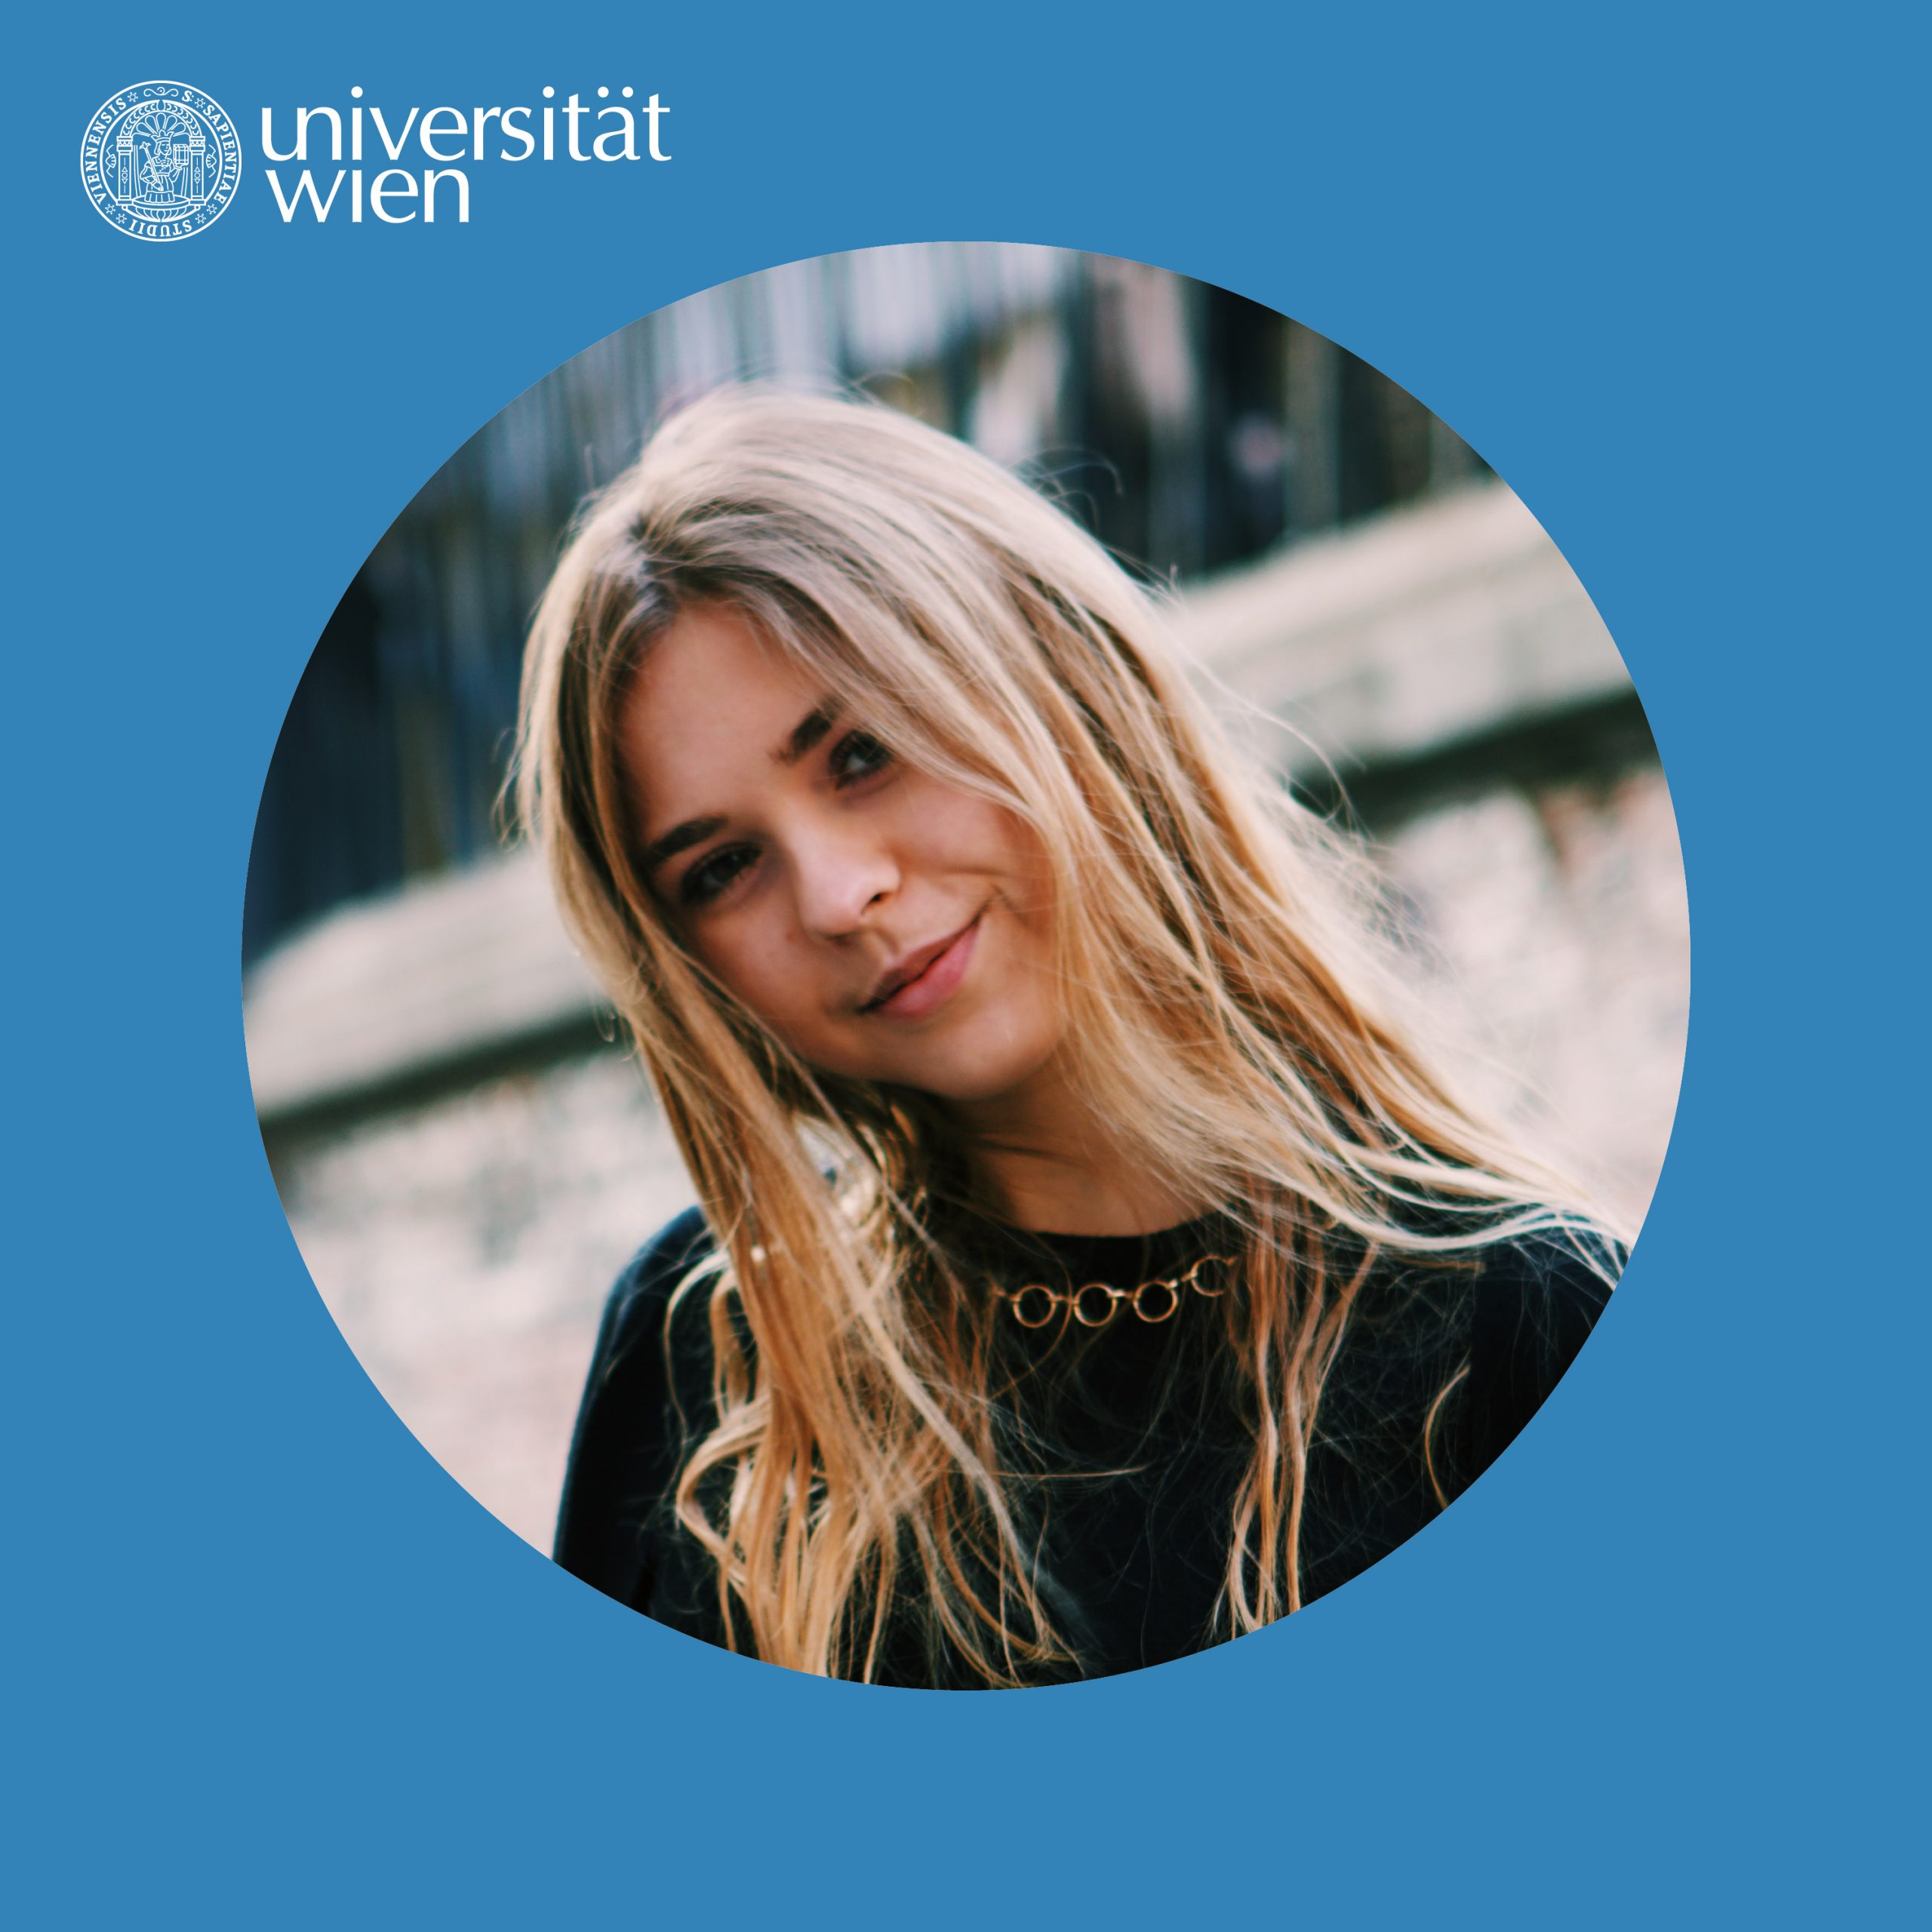 Leonie als Human of univie